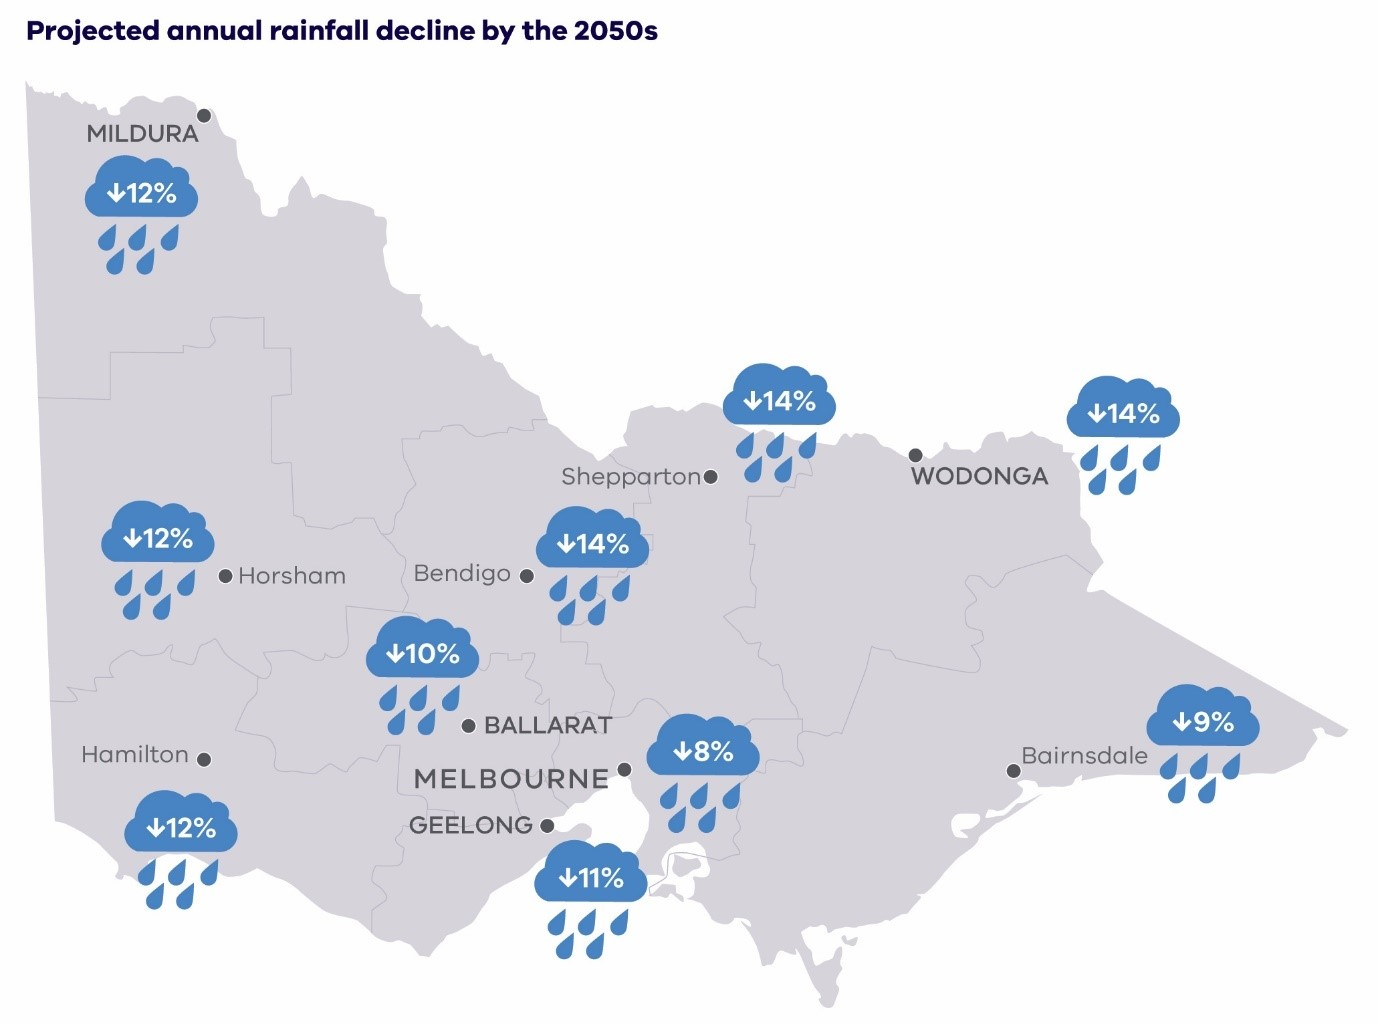 Average decline in annual rainfall in percent for locations across Victoria for the 2050s under high emissions scenario (RCP 8.5) compared to 1986–2005 (CSIRO, 2019).